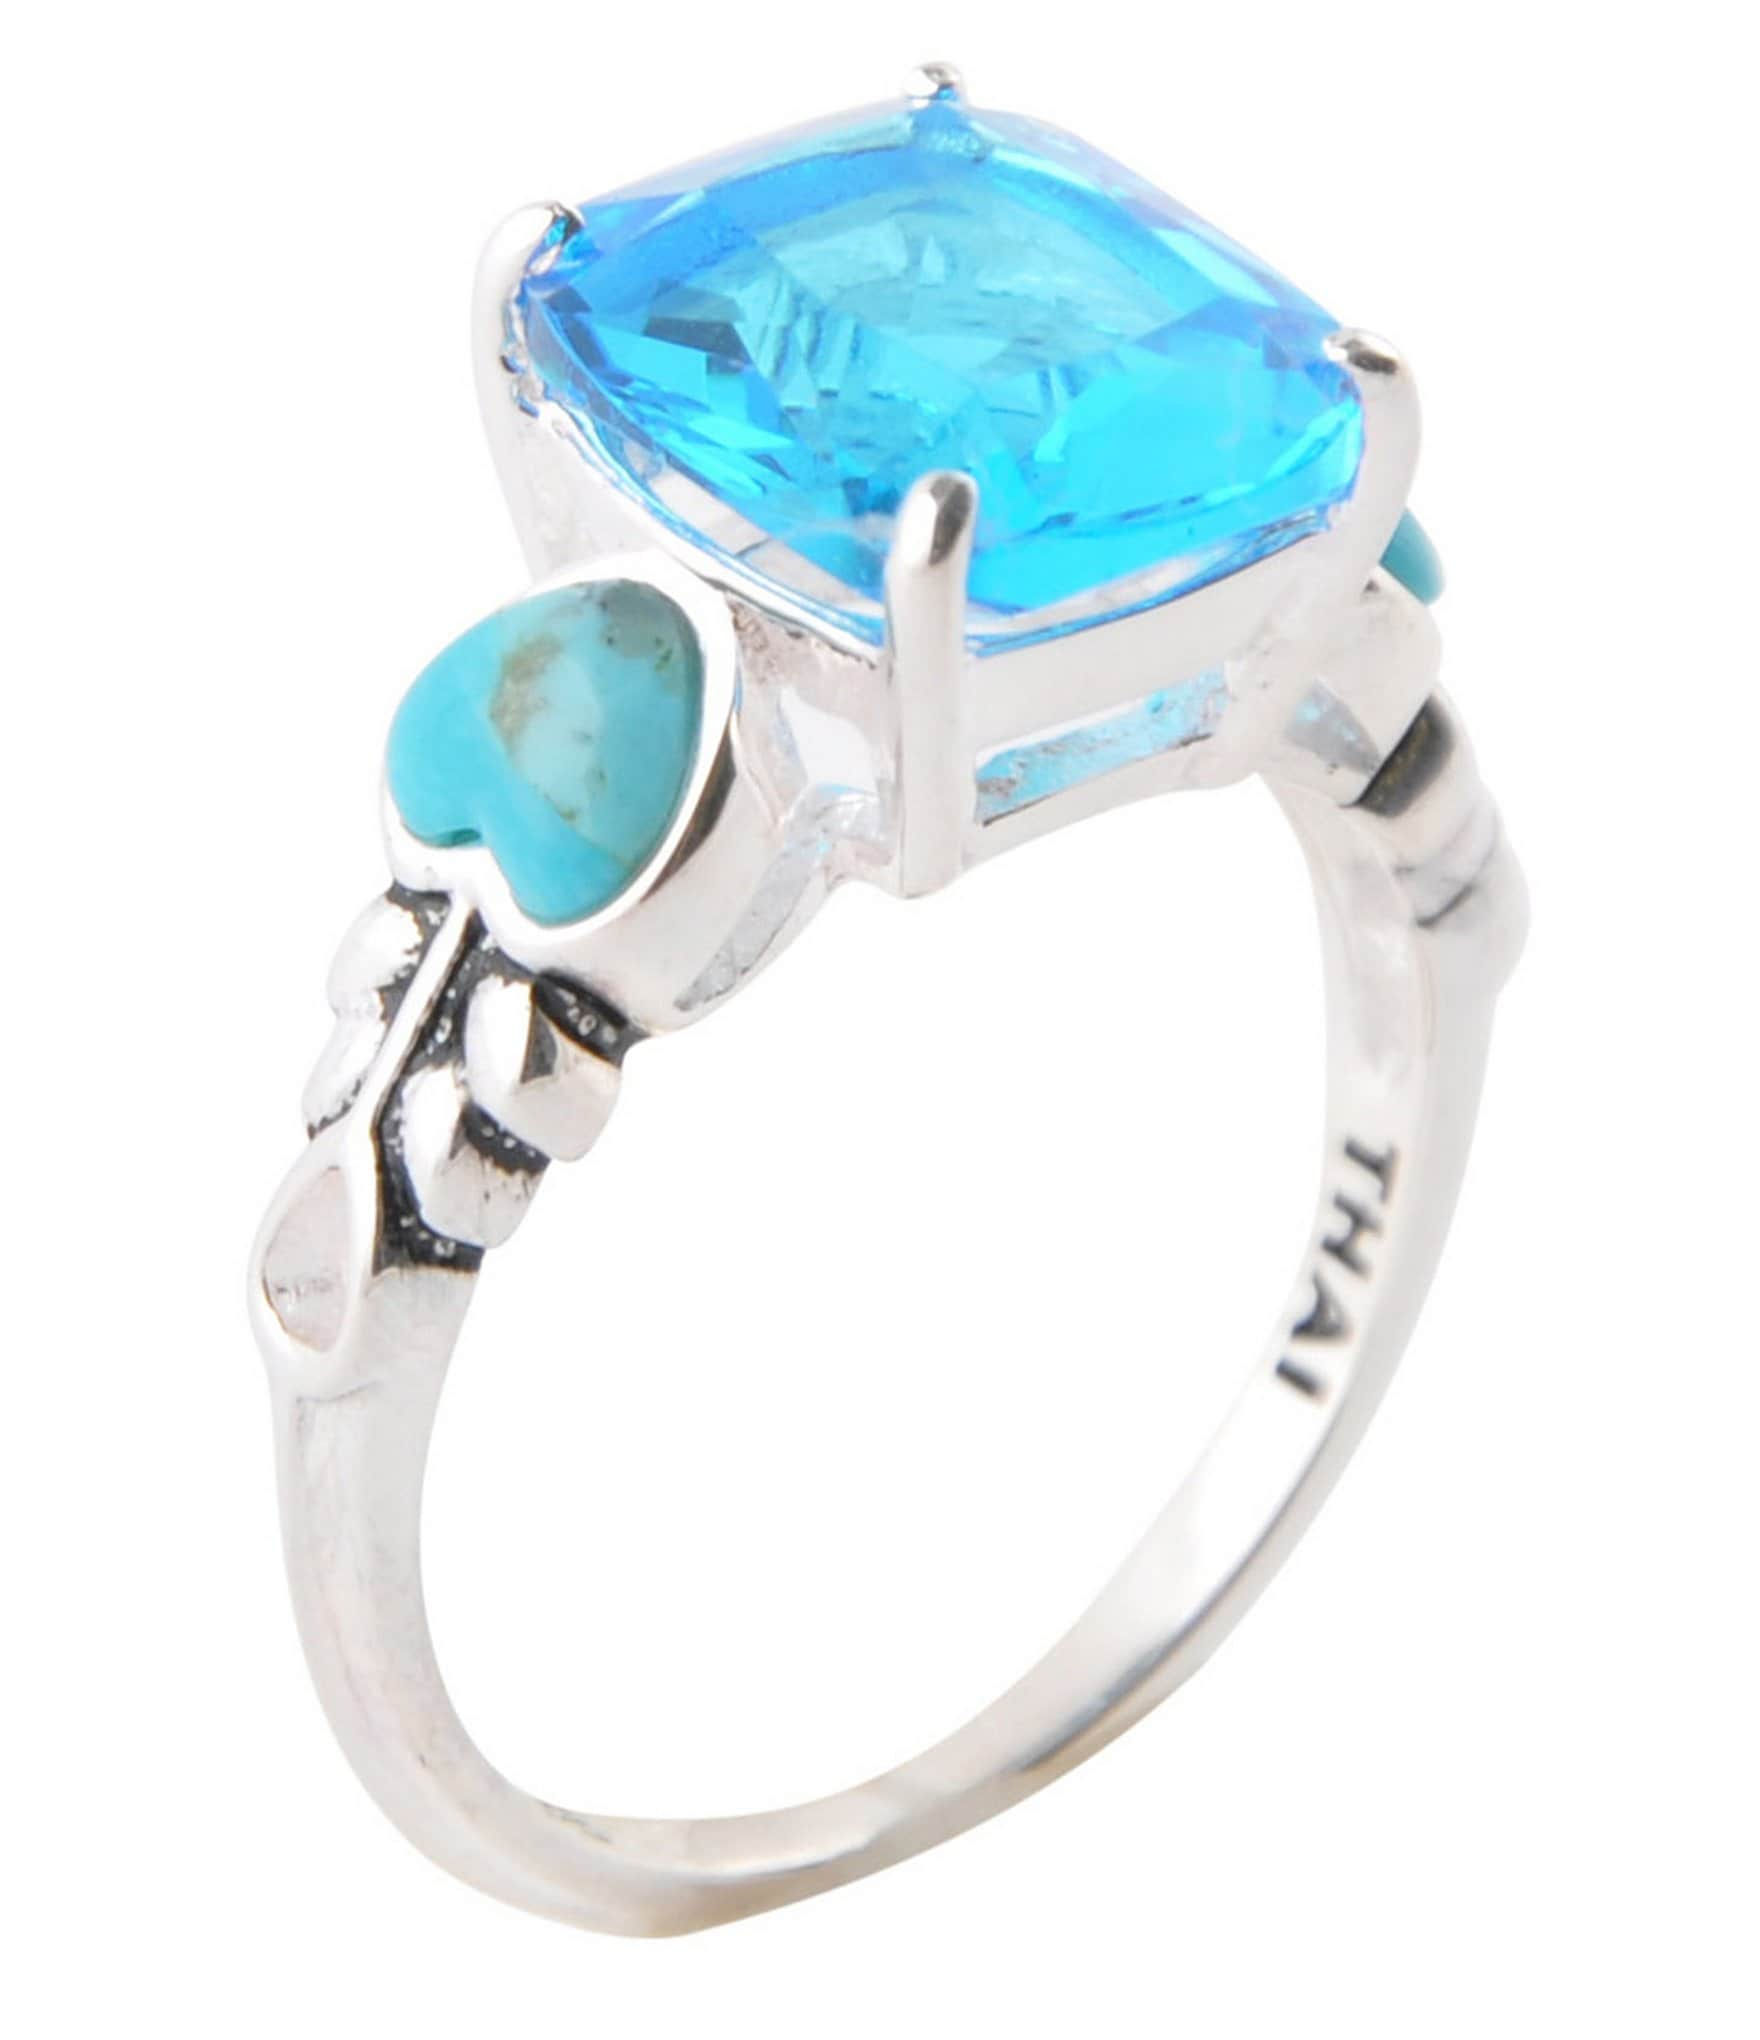 ring gold w and in engagement stone rings rose or white turquoise guard ct available womens with matching yellow sets